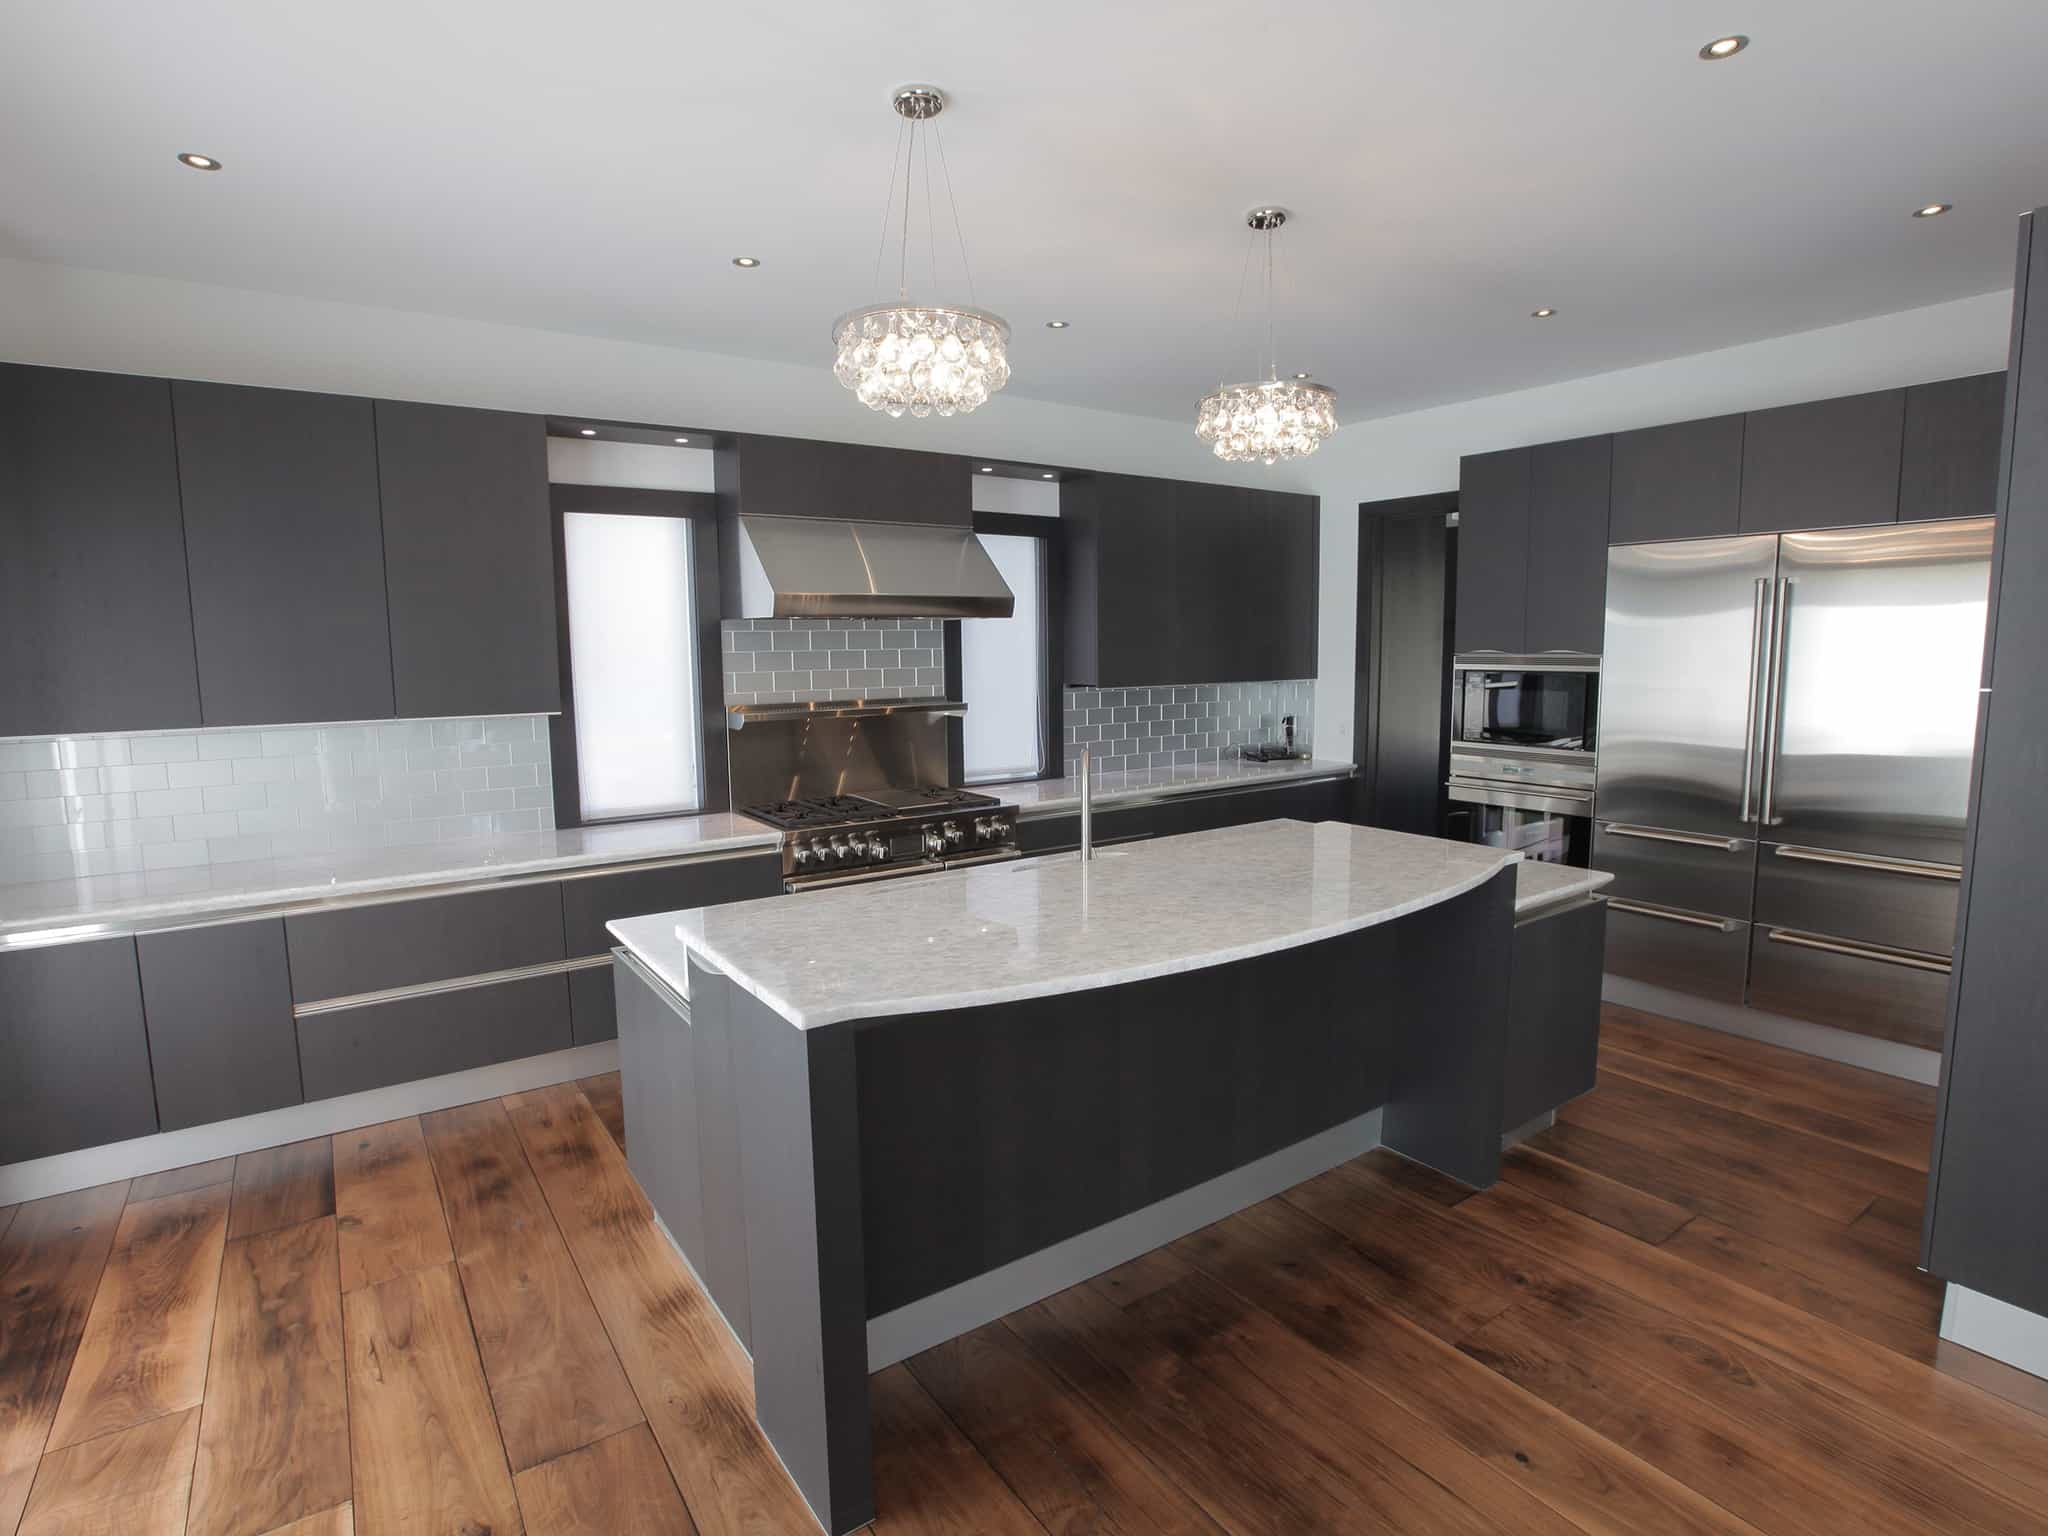 Fitted Kitchen Design Plans With Wood Flooring (View 14 of 15)